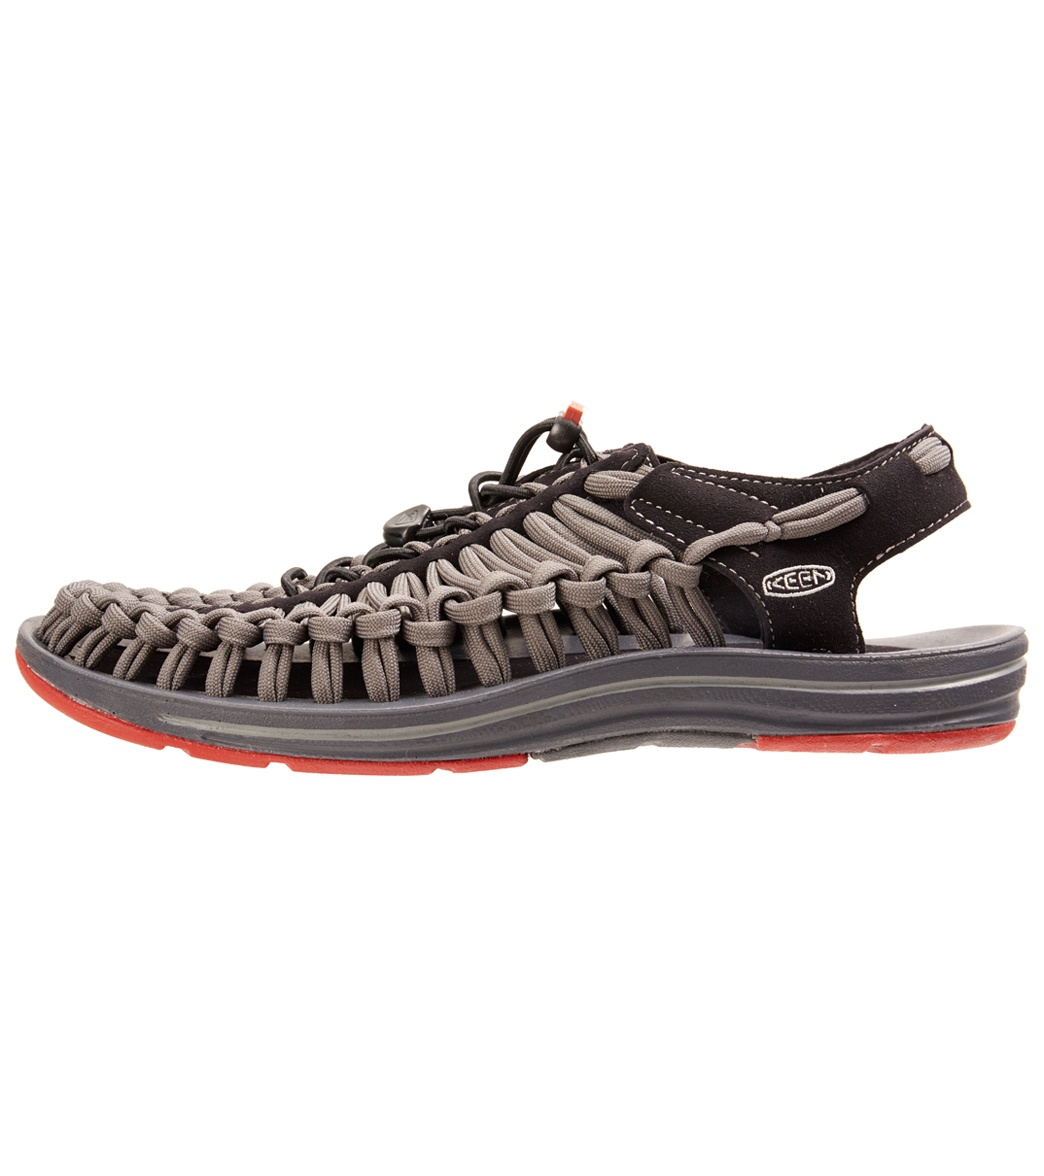 9d2bc991d6ce Keen Men s Uneek Flat Cord Water Shoes at SwimOutlet.com - Free Shipping